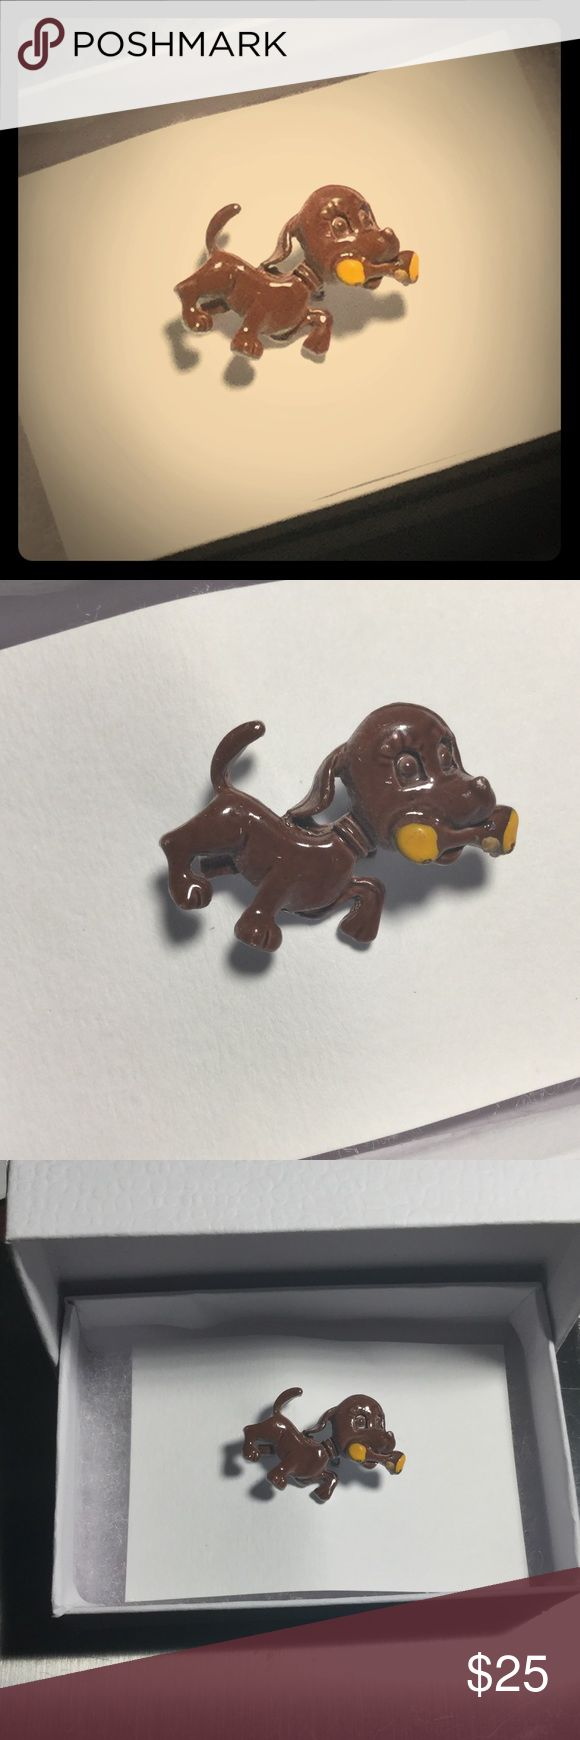 """Vintage Puppy Dog Brooch, Lapel Pin, hat pin Boxed 1.25"""" wide x 1"""" tall the enamel is unblemished, appears to be in the same condition that it has been when it was made - perhaps a bit less shiny. This is a truly vintage item with only a few available on auction sites such as eBay. Comes in a gift box and am happy to include a hand calligraphy message in a card of your choice: missing you, congratulations, birthday, thank you, condolences, blank, etc. Vintage Accessories"""